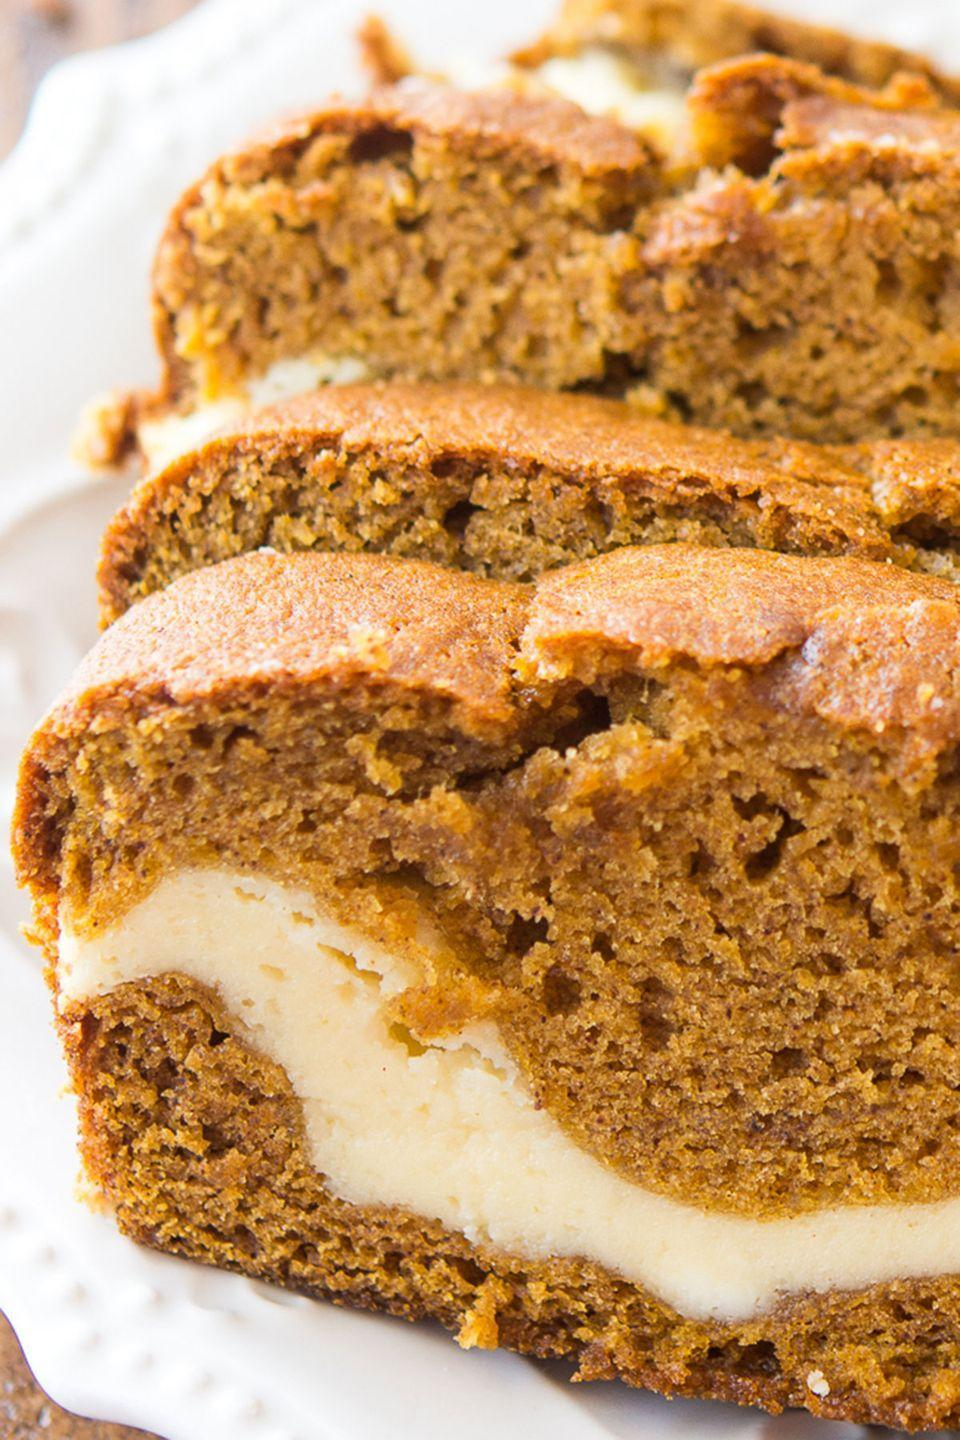 """<p>A white swirl of cream cheese is exactly what pumpkin bread needs. </p><p><strong>Get the recipe at <a href=""""http://dearcrissy.com/cream-cheese-filled-pumpkin-bread/#_a5y_p=5785476"""" rel=""""nofollow noopener"""" target=""""_blank"""" data-ylk=""""slk:Dear Crissy"""" class=""""link rapid-noclick-resp"""">Dear Crissy</a>. </strong></p>"""